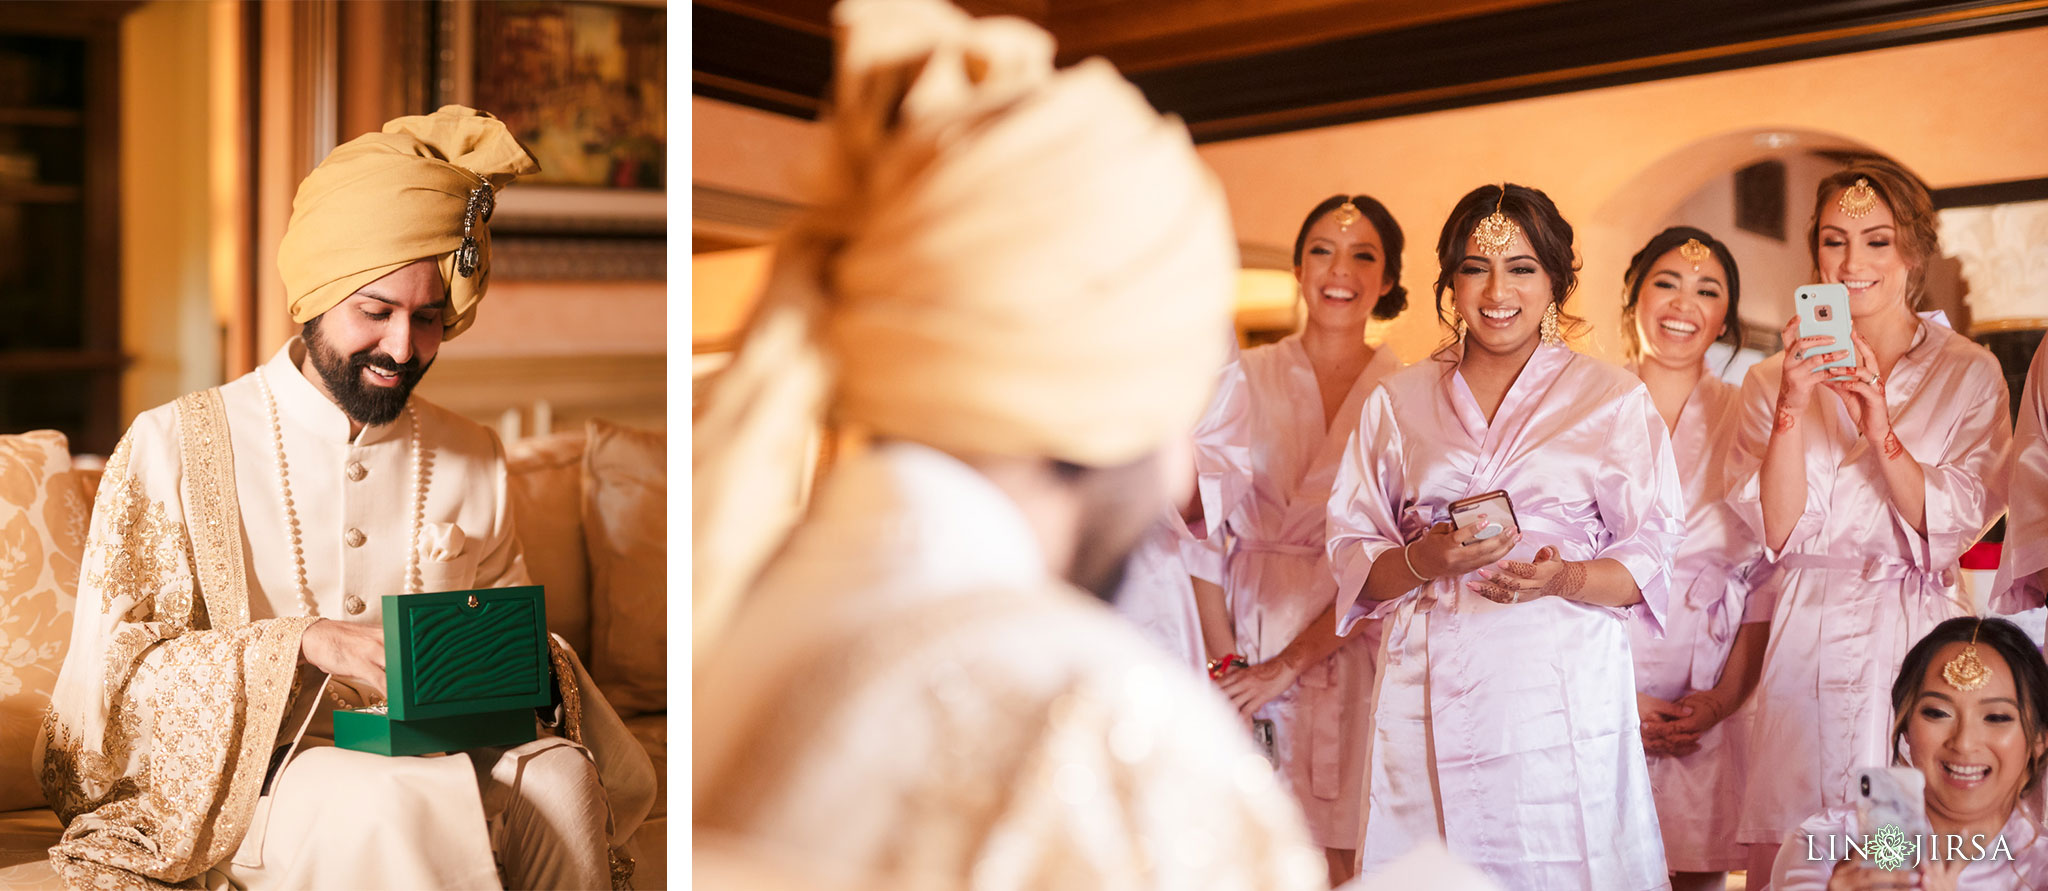 13 Fairmont Grand del Mar San Diego Indian Wedding Photography